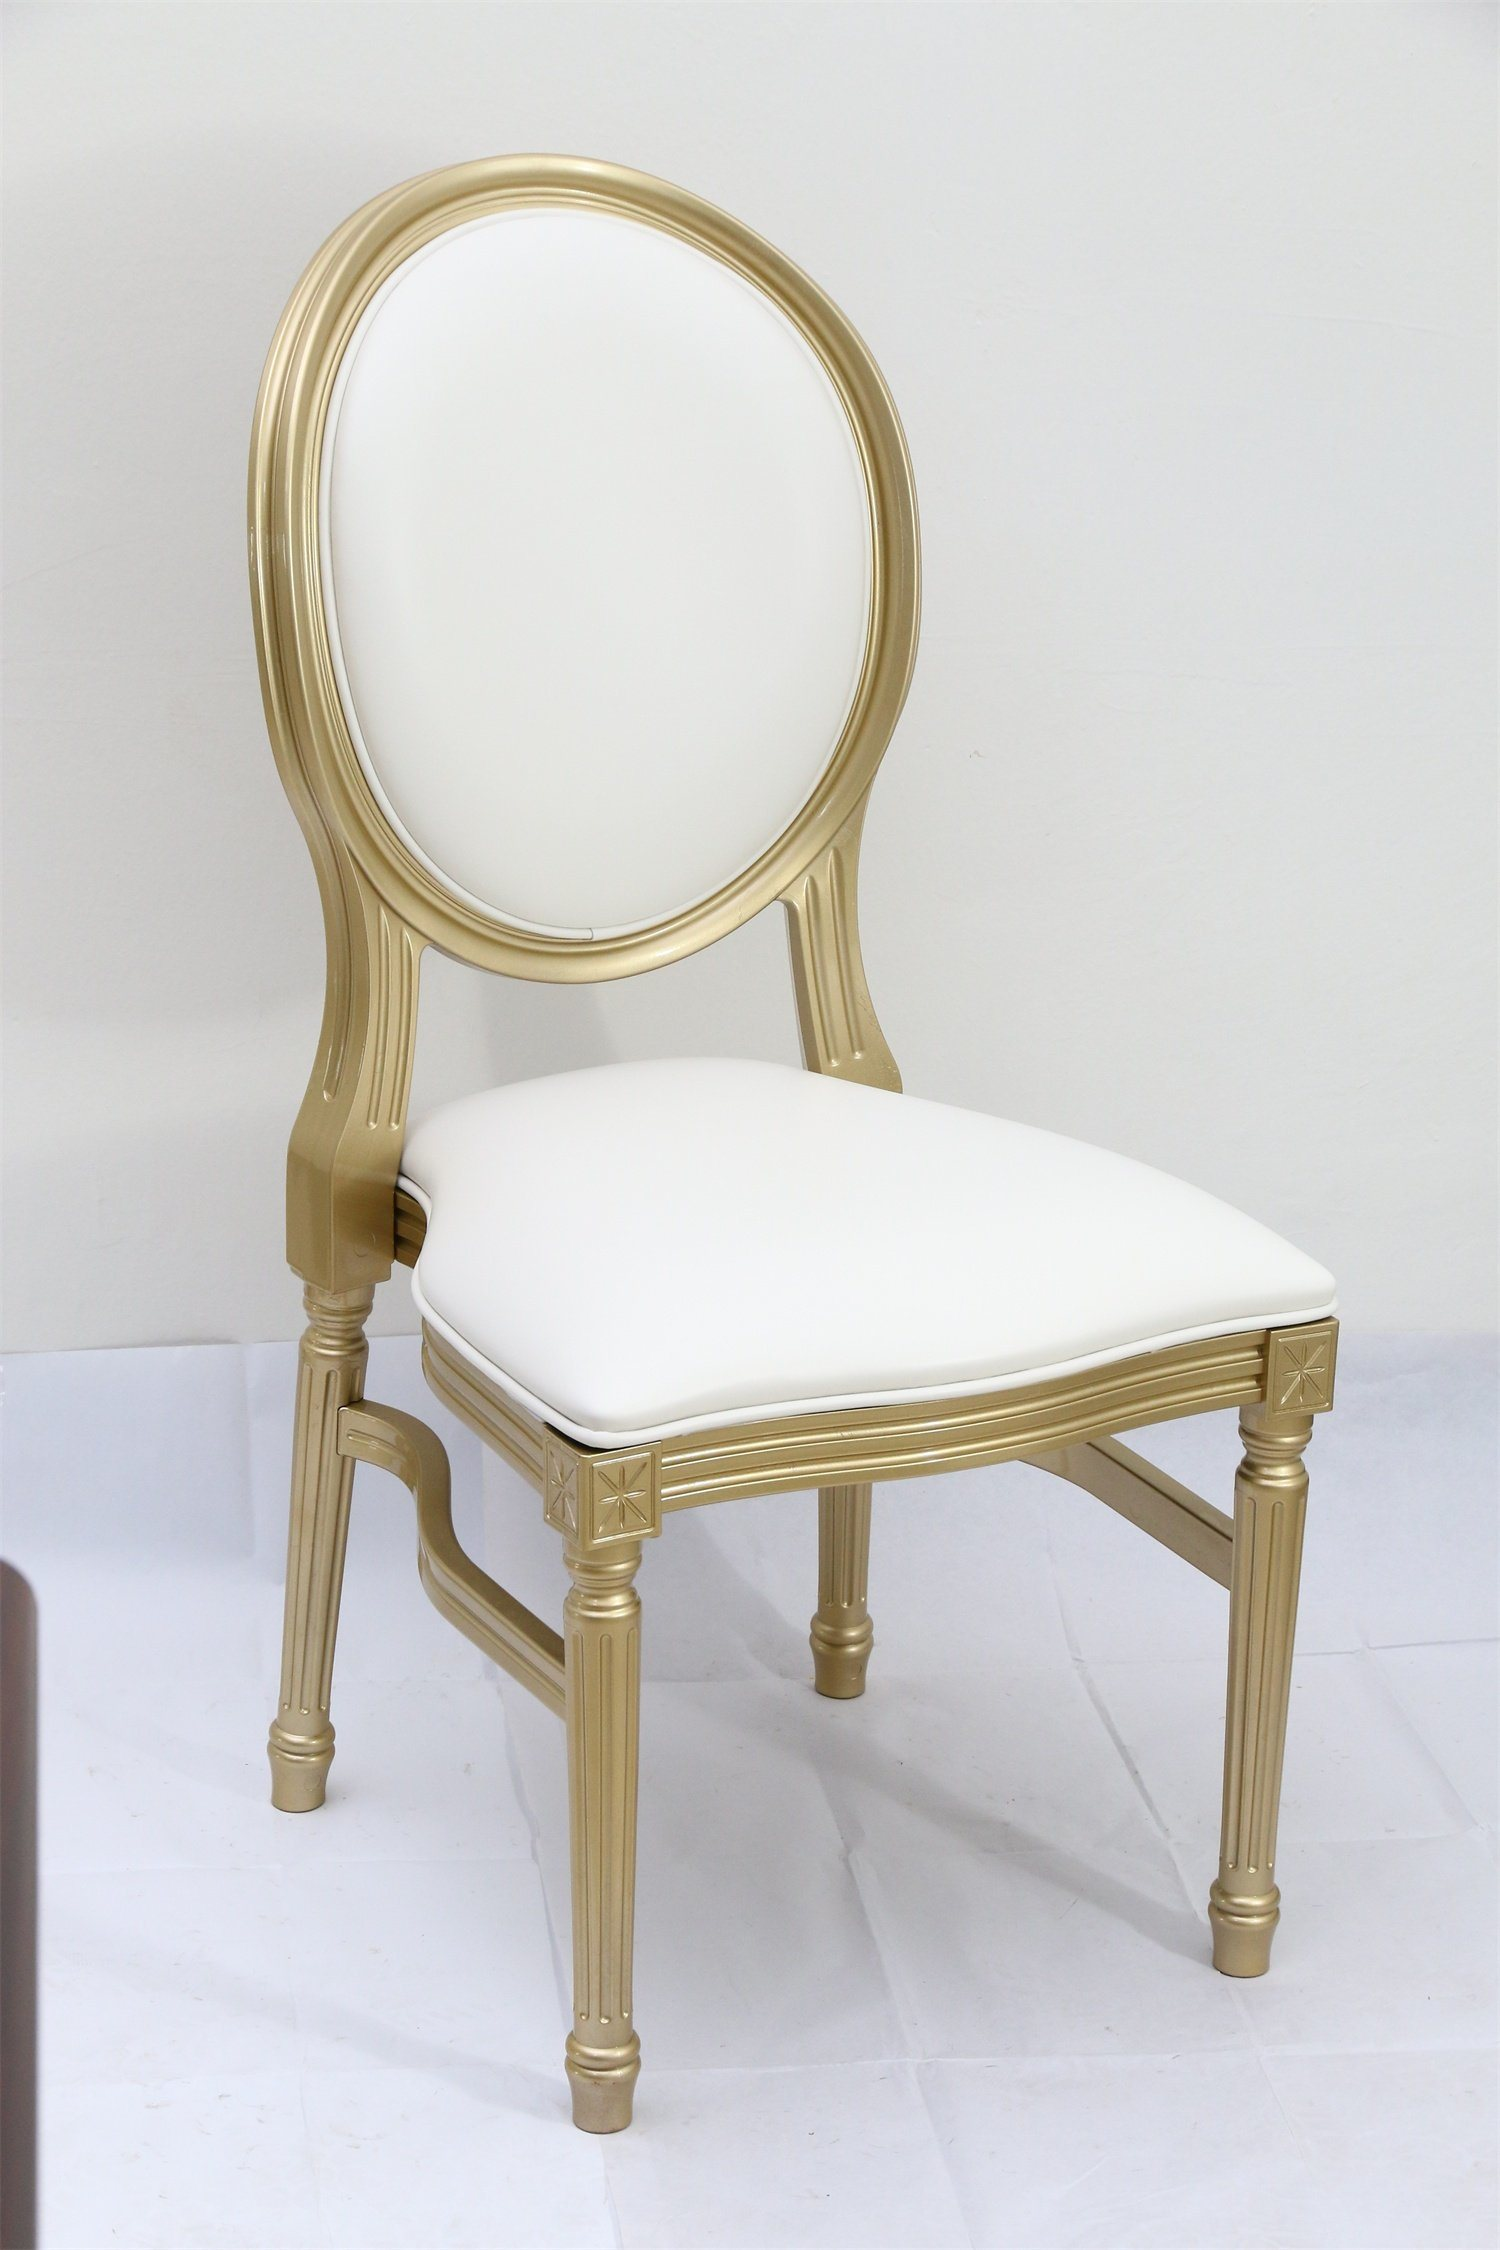 wood banquet chairs. China Ghost Wedding Chair Louis Dining Banquet - Chair, Wood Chairs